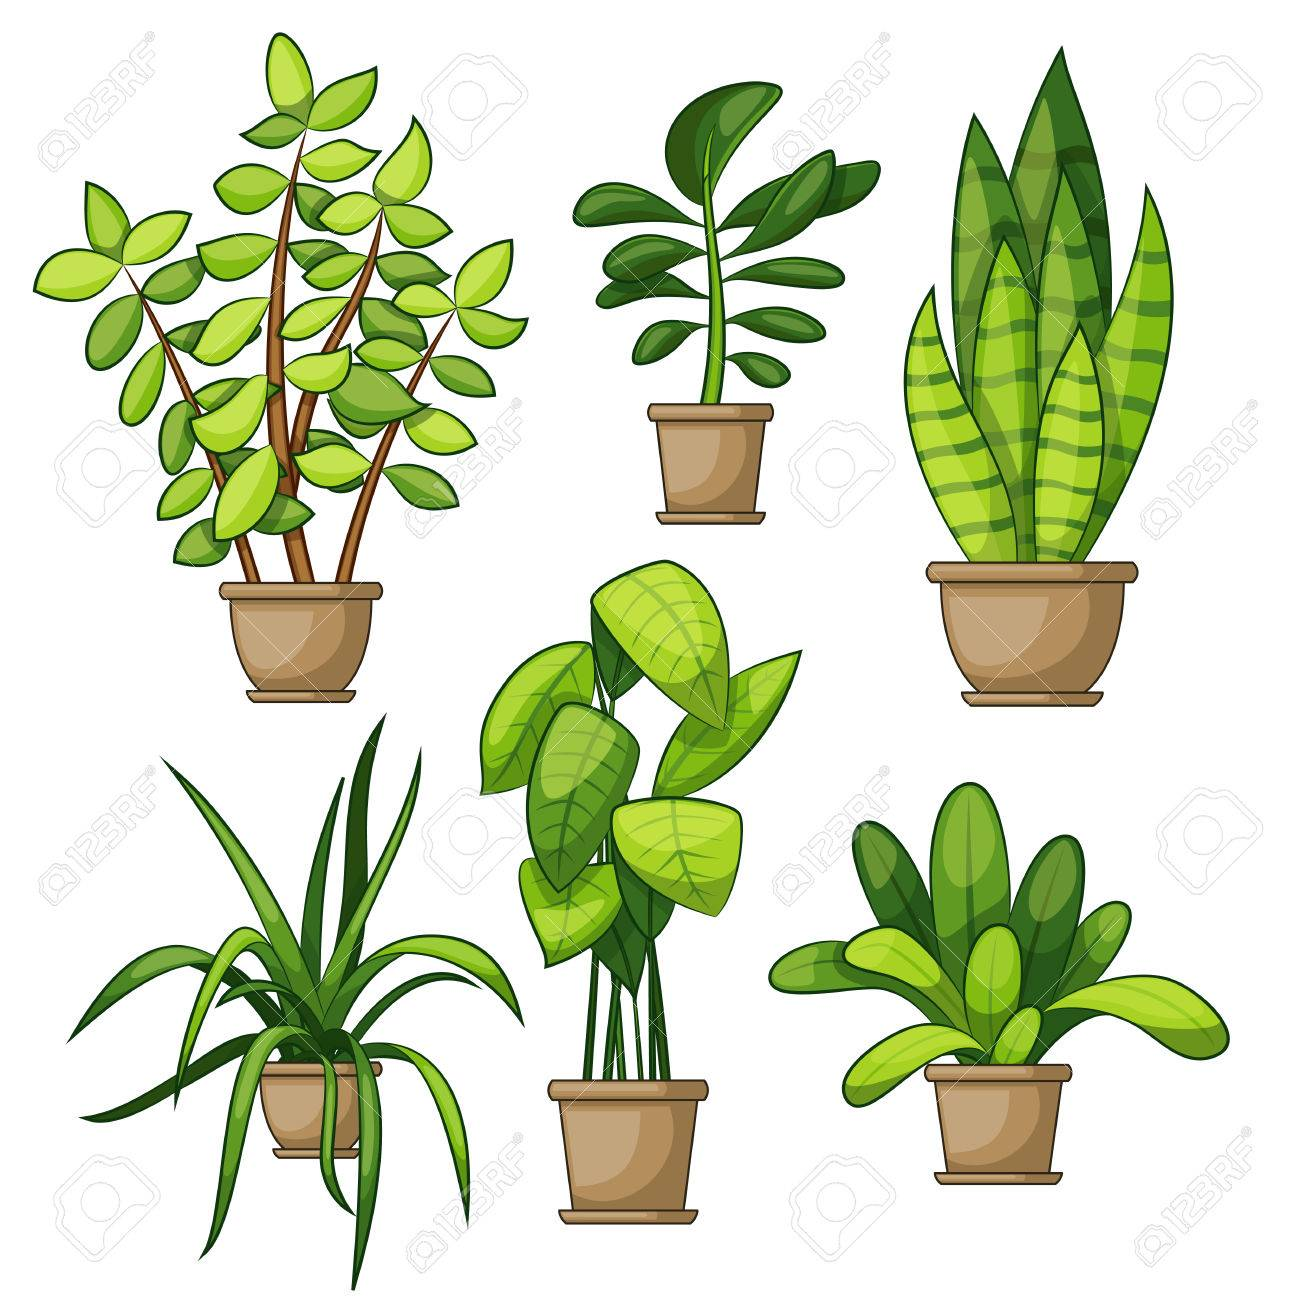 Set Of Different House Plants Royalty Free Cliparts Vectors And Stock Illustration Image 78108172